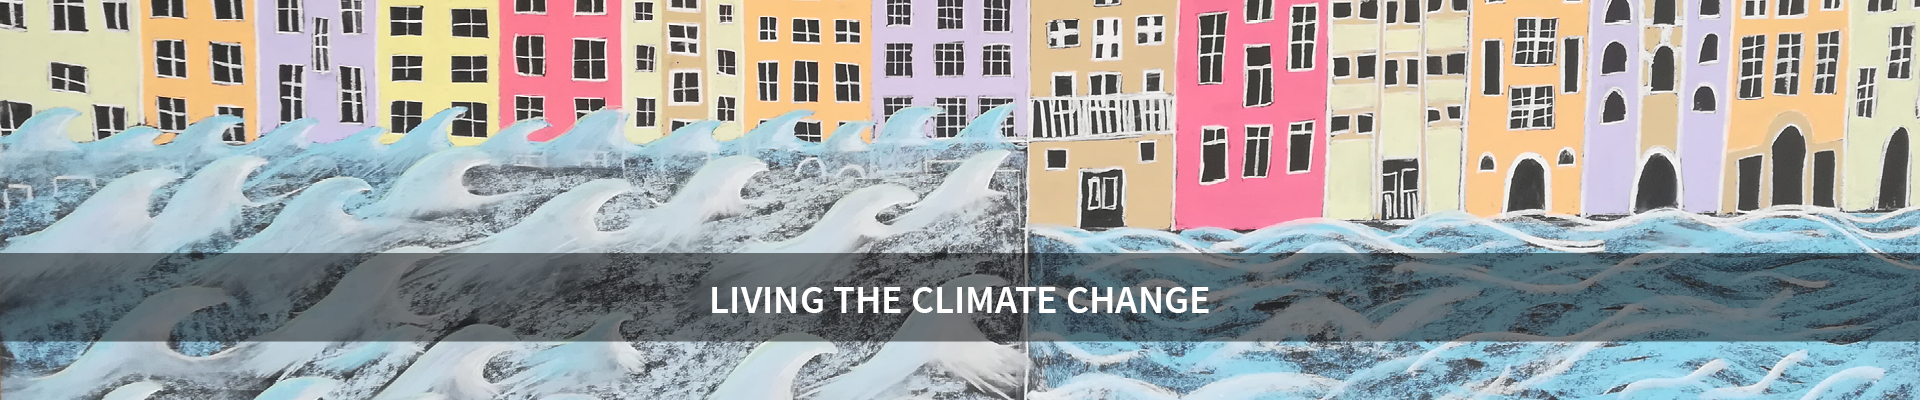 Living the climate change -